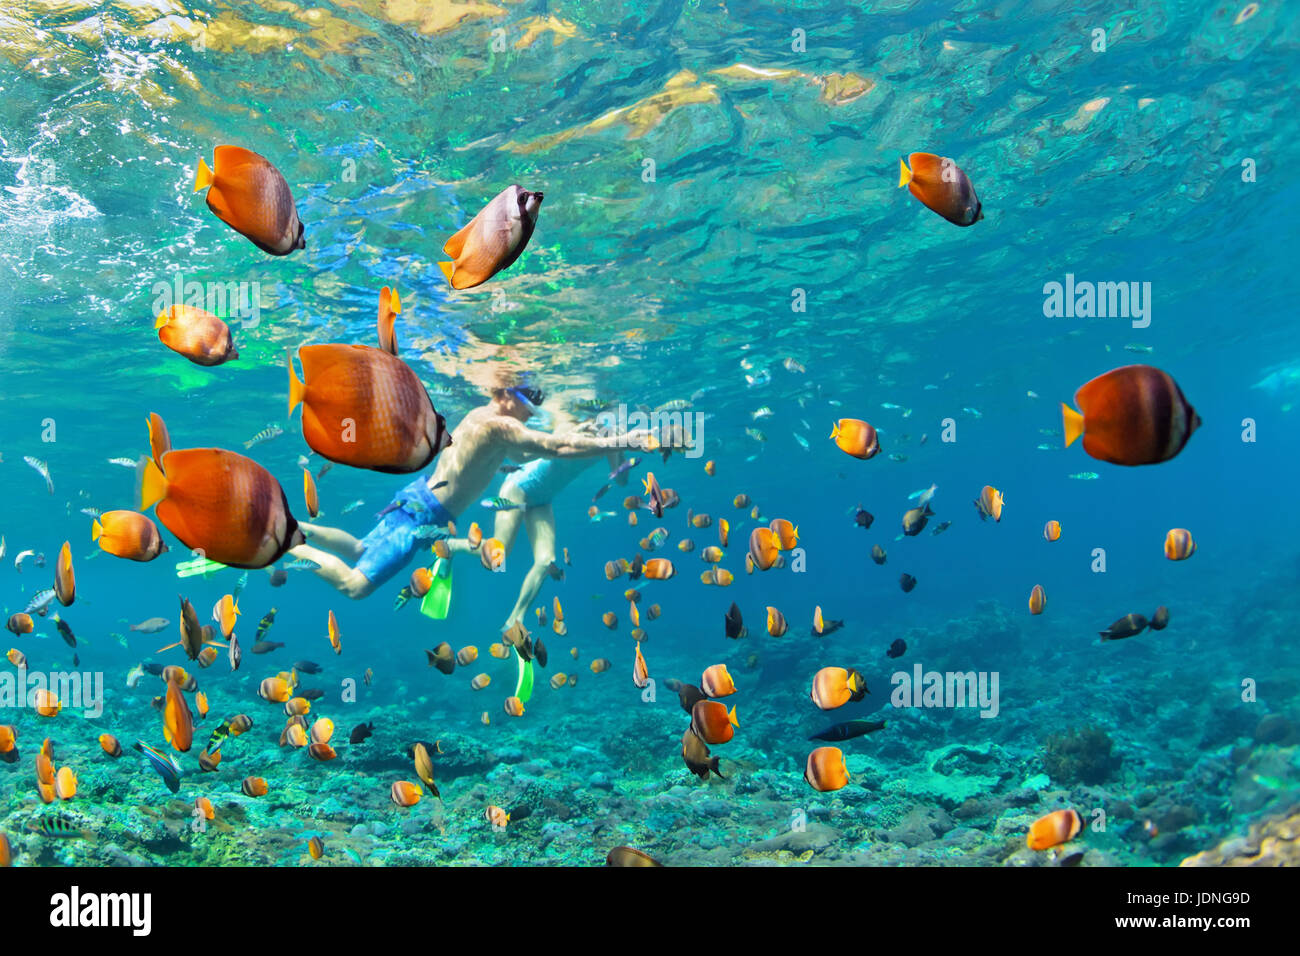 Happy family - couple in snorkeling masks dive deep underwater with tropical fishes in coral reef sea pool. Travel Stock Photo